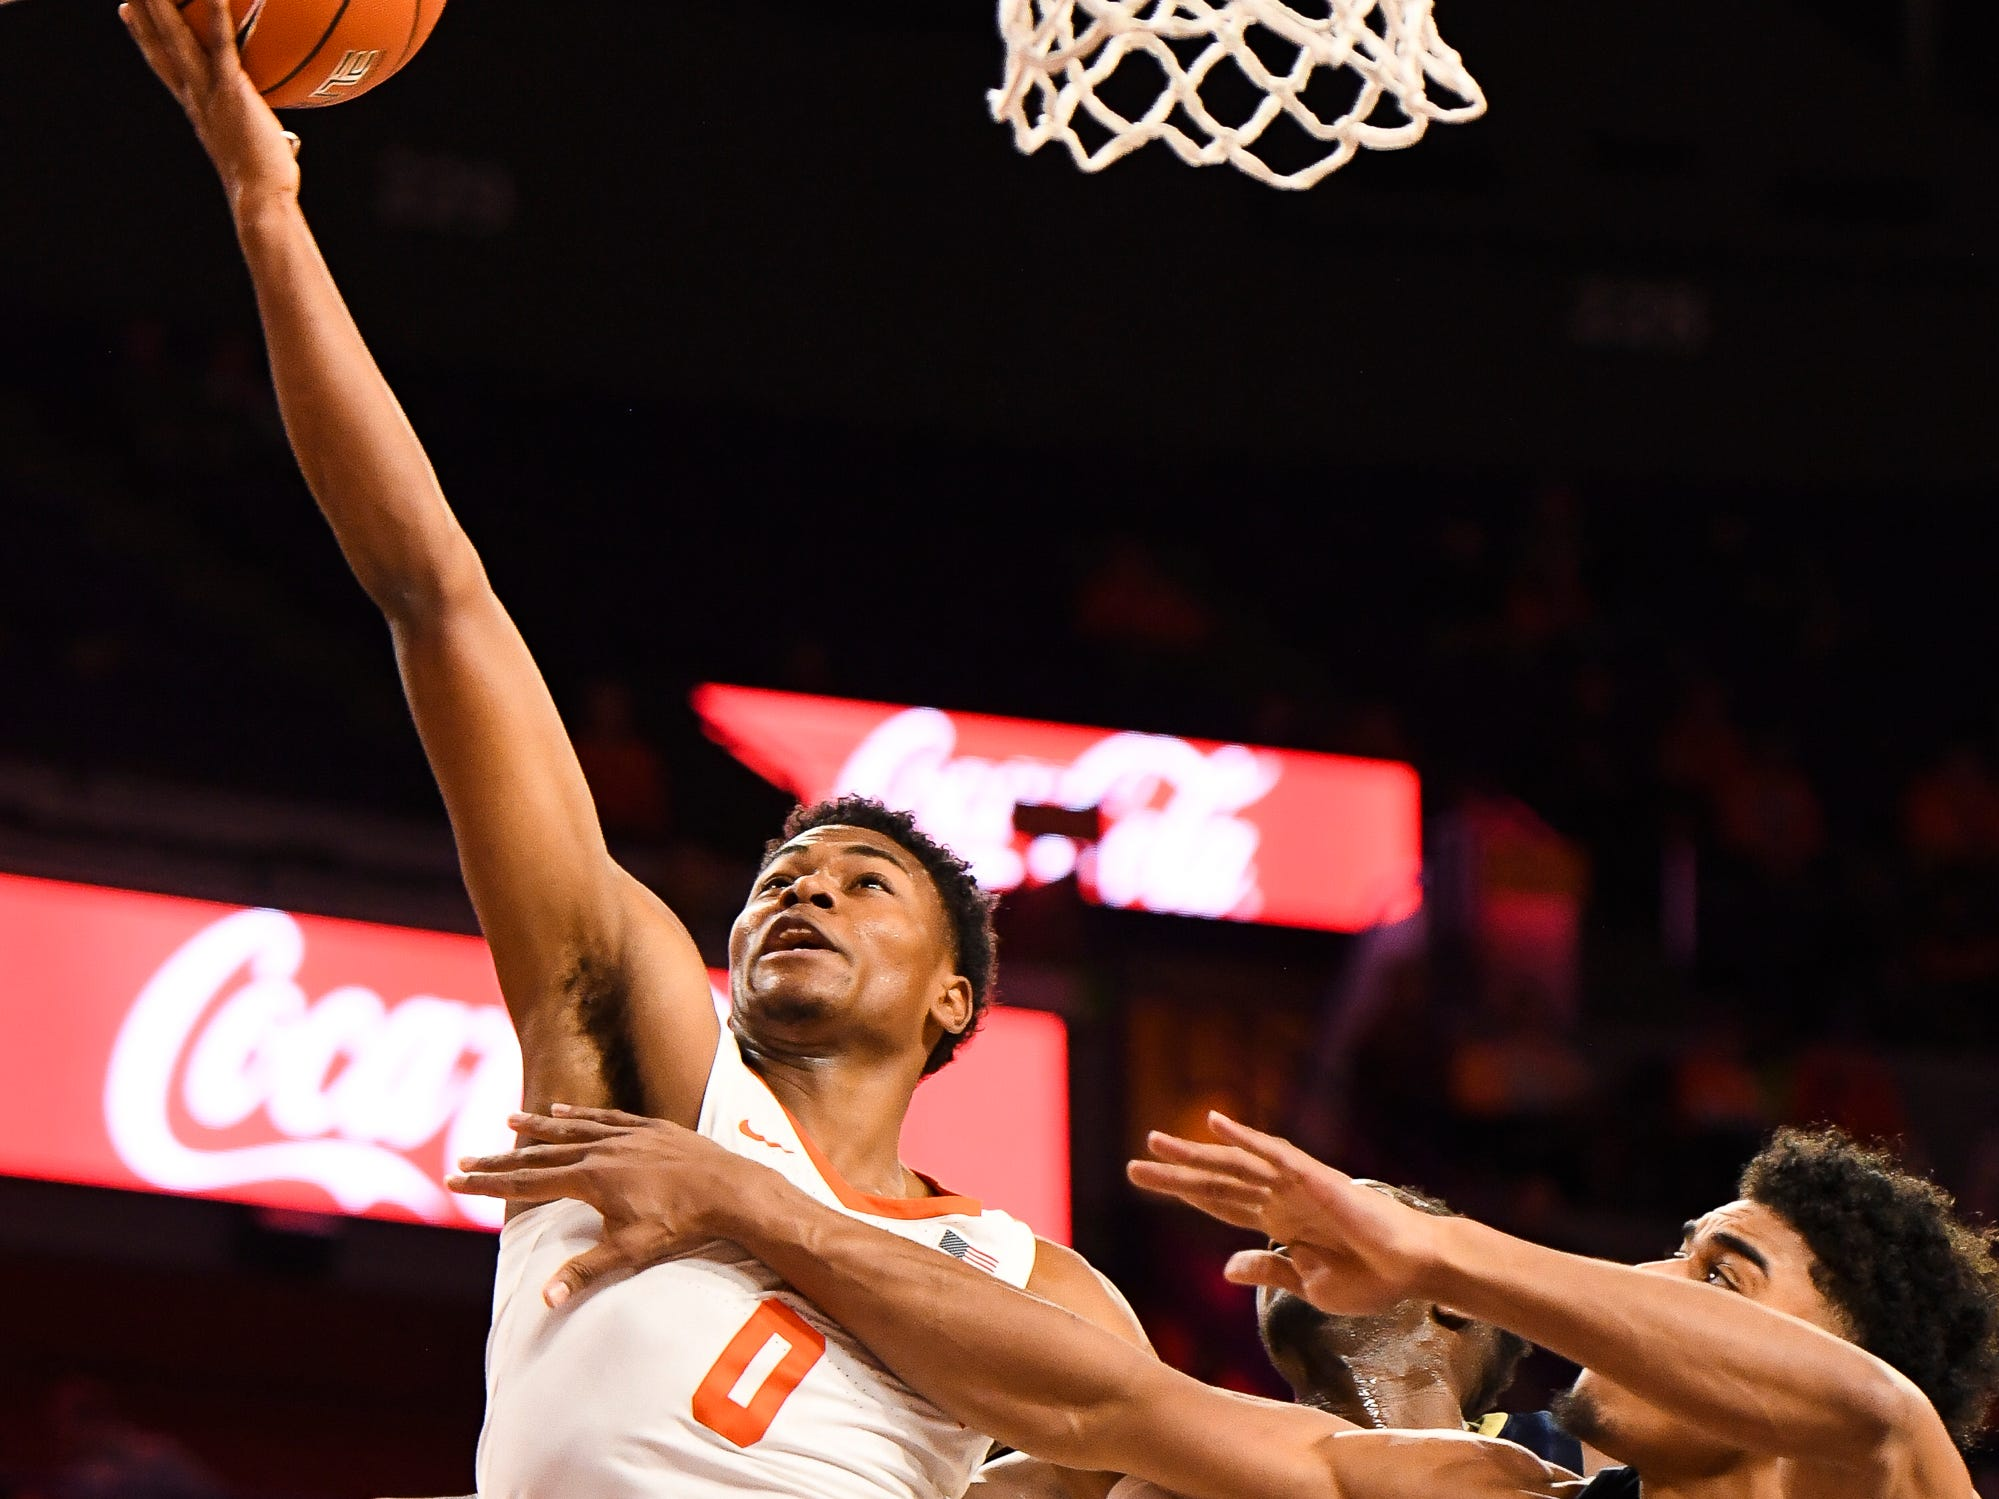 Clemson guard Clyde Trapp (0) attempts to shoot the ball as PittsburghÕs Sidy NÕDir (11) and Malik Ellison (3) defend at Littlejohn Stadium on Tuesday, Jan. 29, 2019.